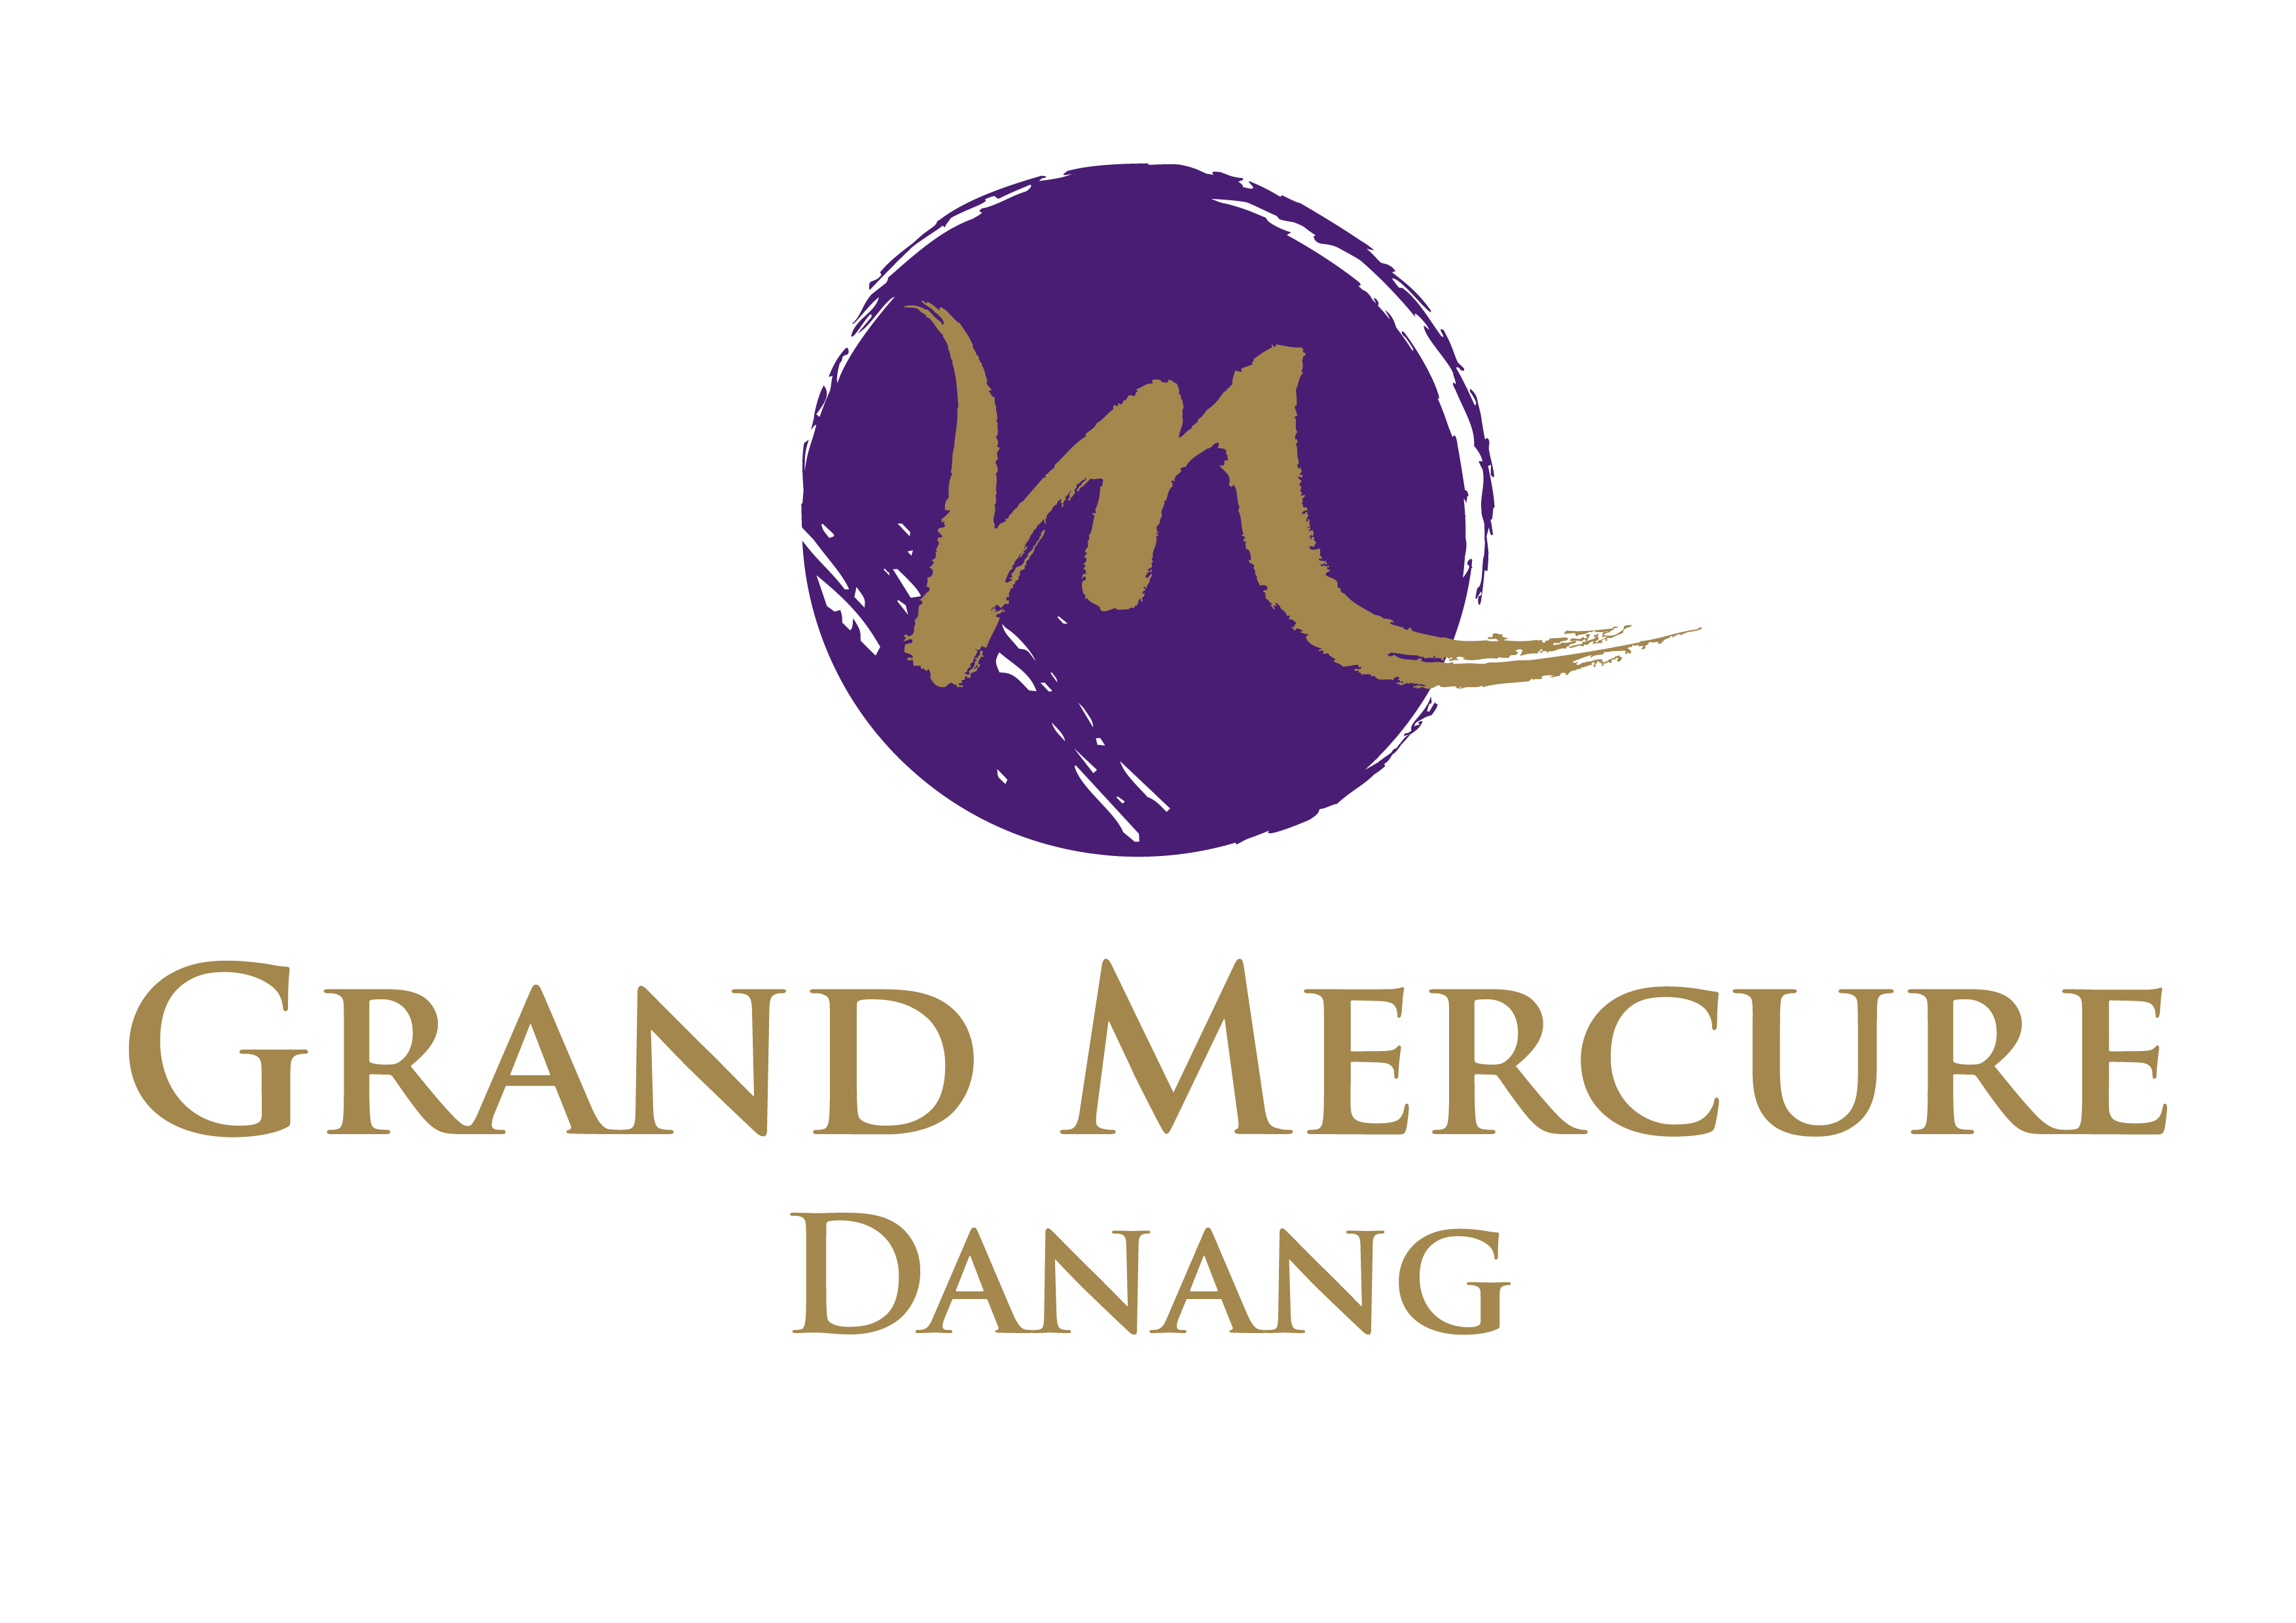 7GM DANANG LOGO